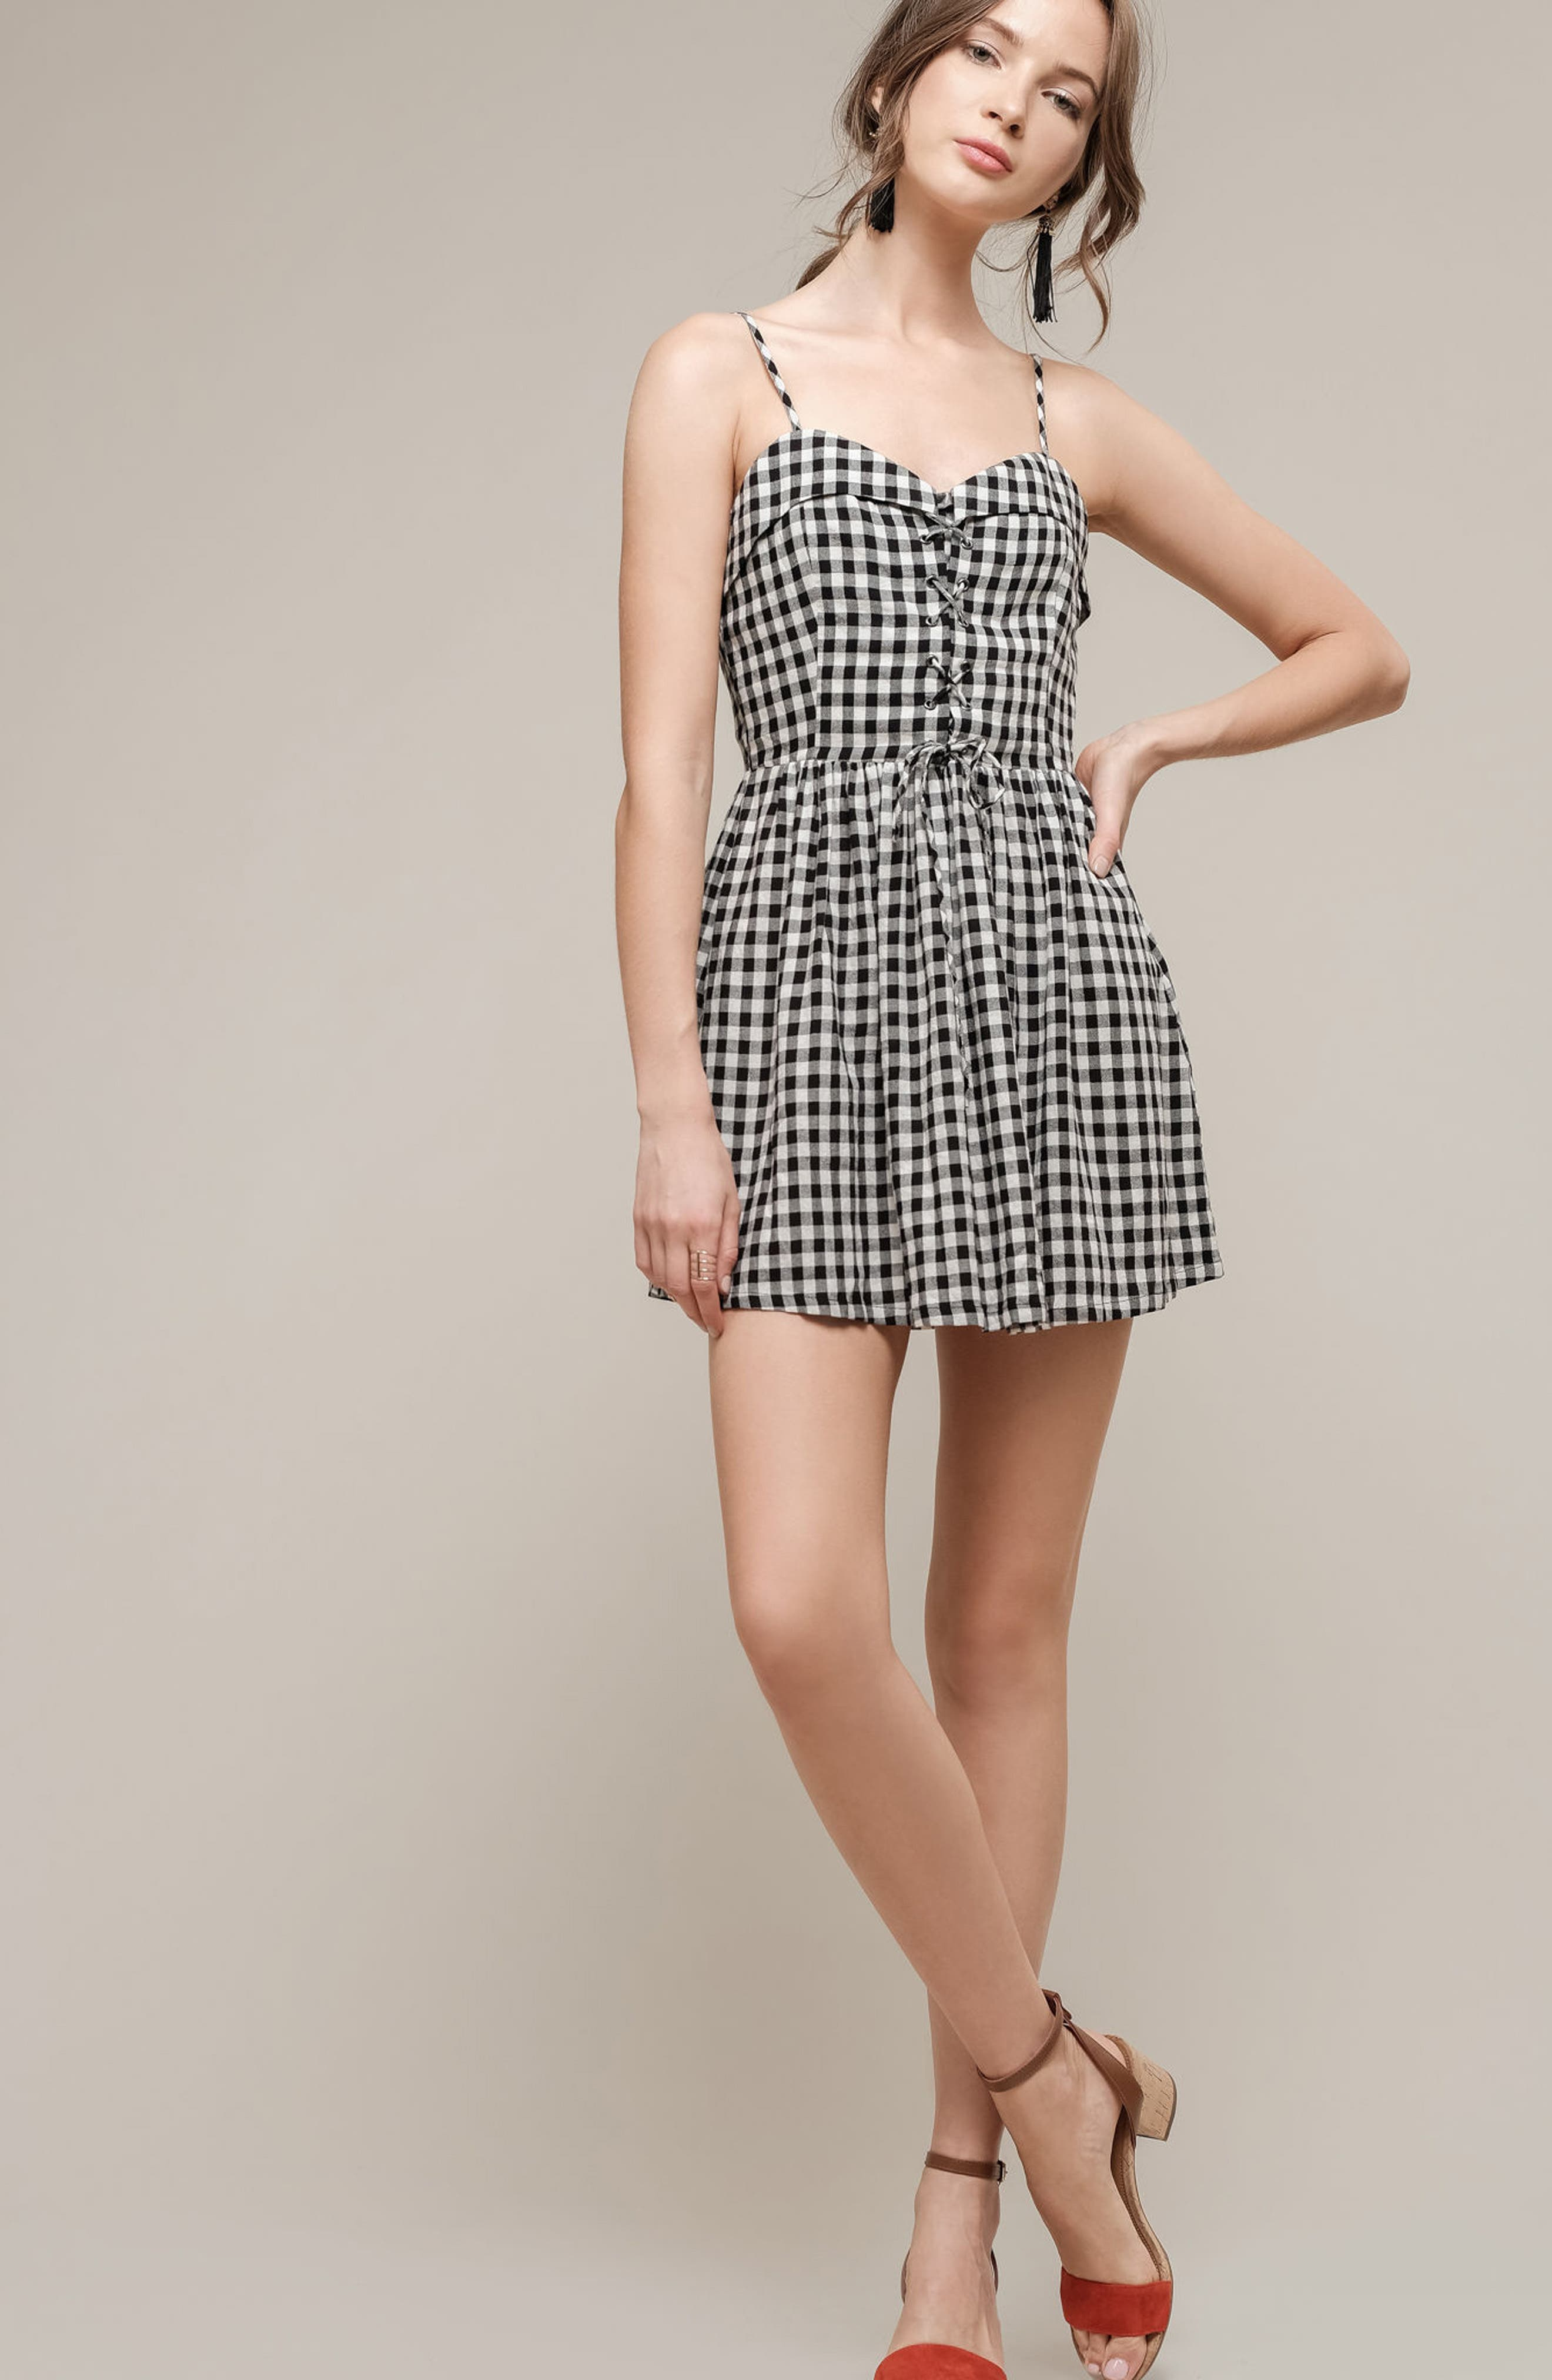 Lace-Up Gingham Dress,                             Alternate thumbnail 2, color,                             Black Gingham